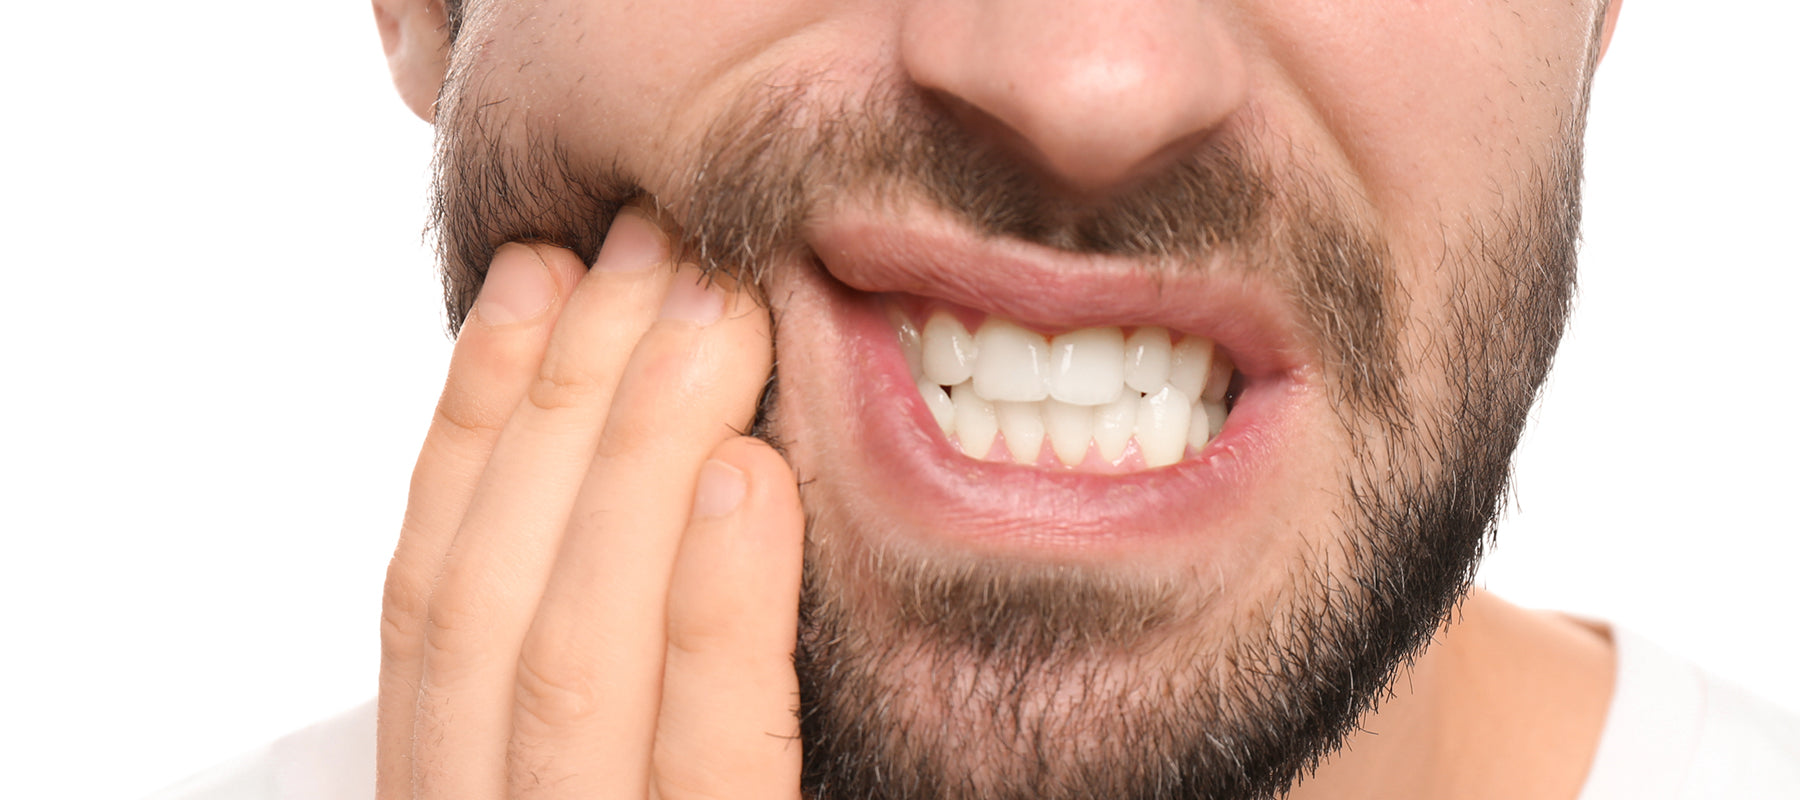 How to Prevent Tooth Erosion Caused by Acid Reflux